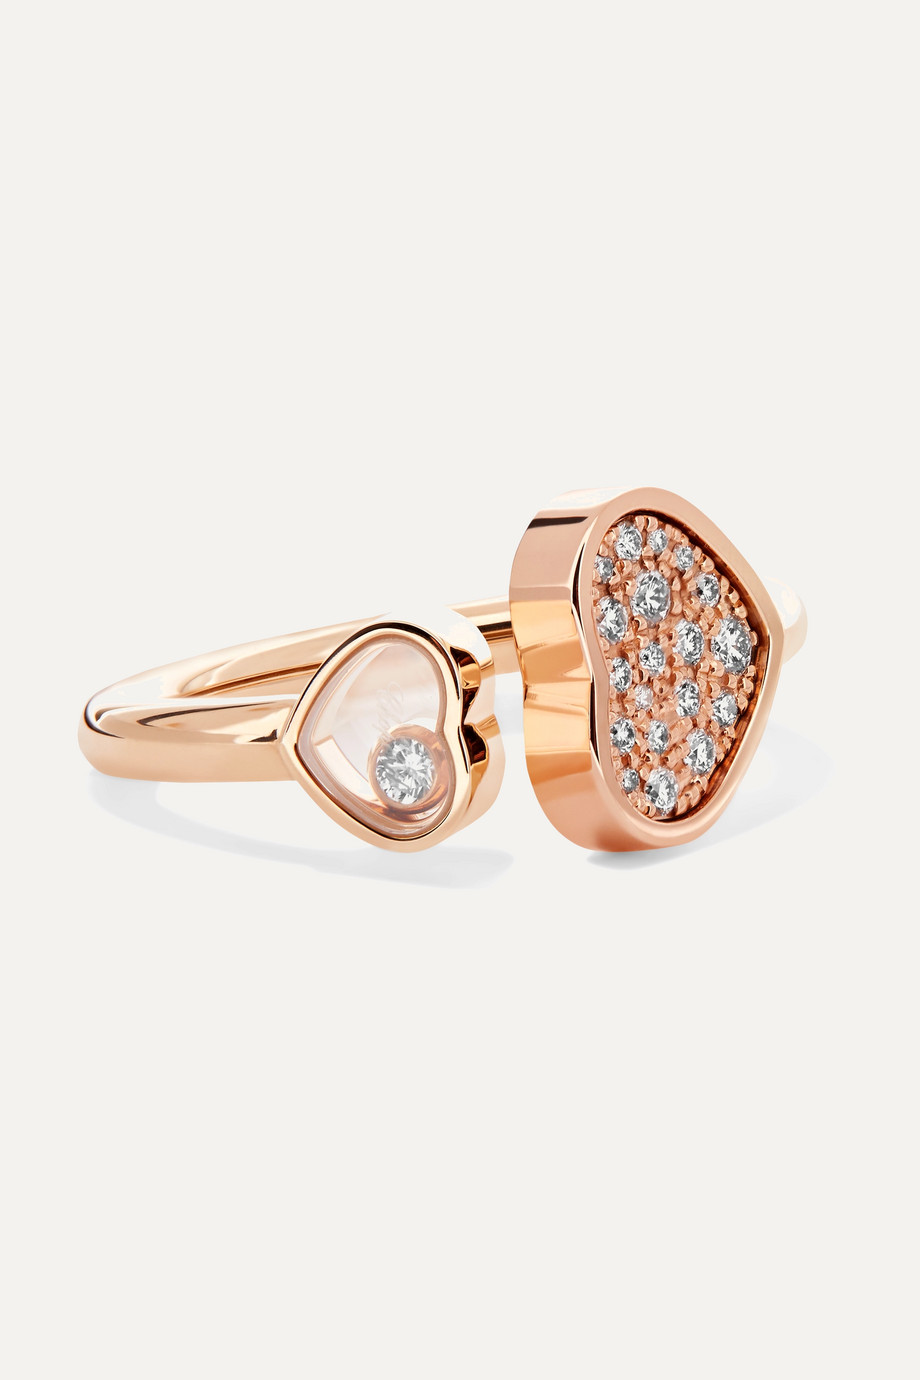 Chopard Bague en or rose 18 carats et diamants Happy Hearts